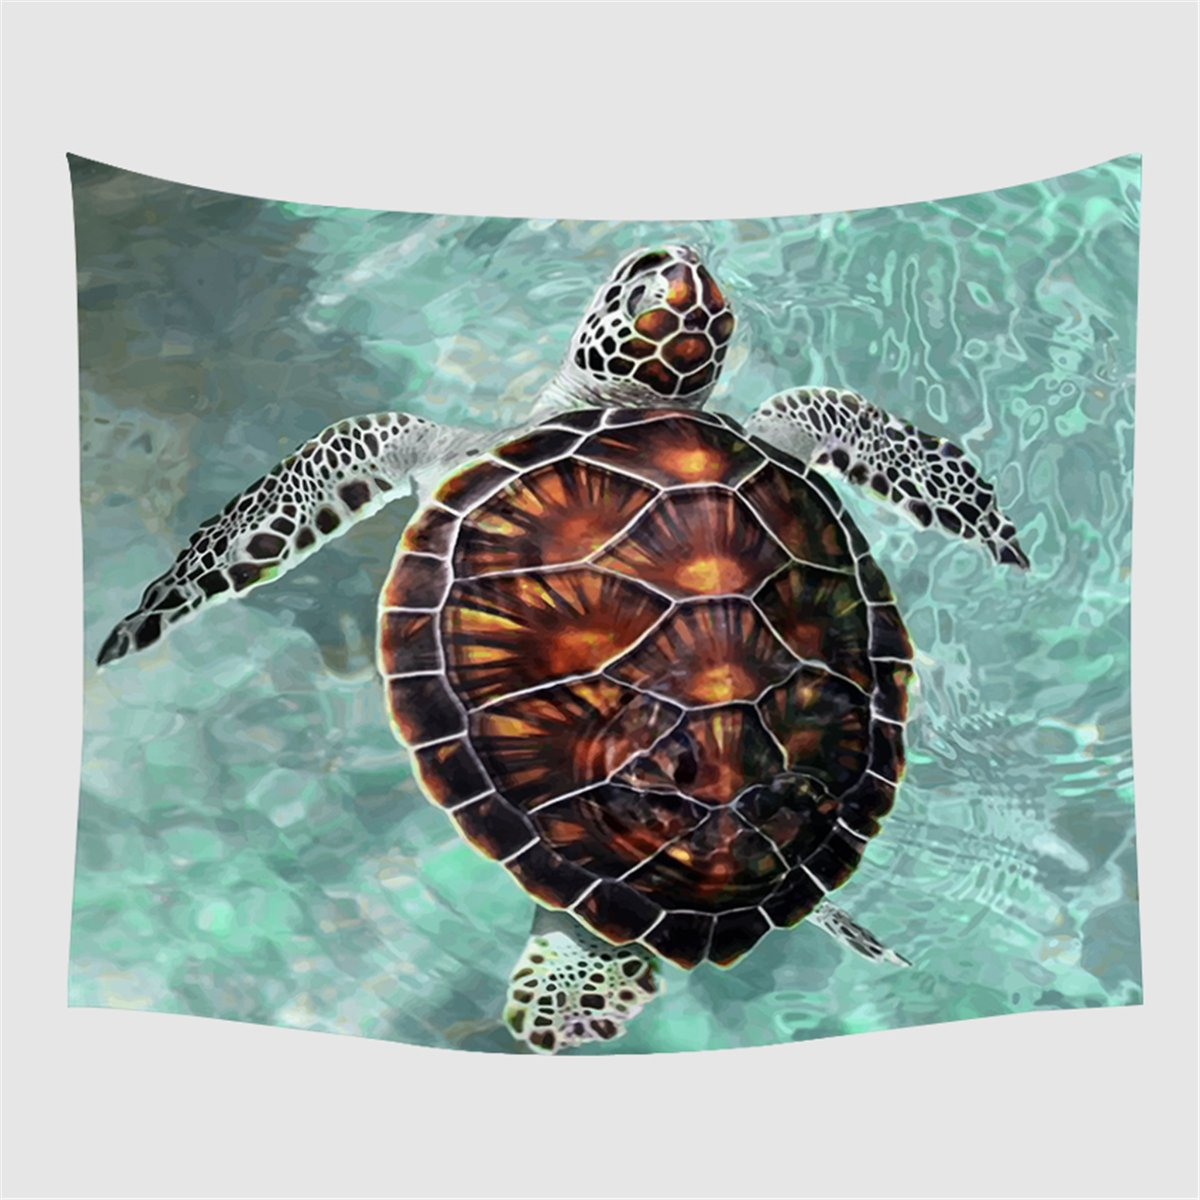 ARIGHTEX Sea Turtle Tapestry Wall Hanging Turquoise Underwater Tapestry Wall Art Decor Wildlife Animal Beach Throw (80''x 60'')